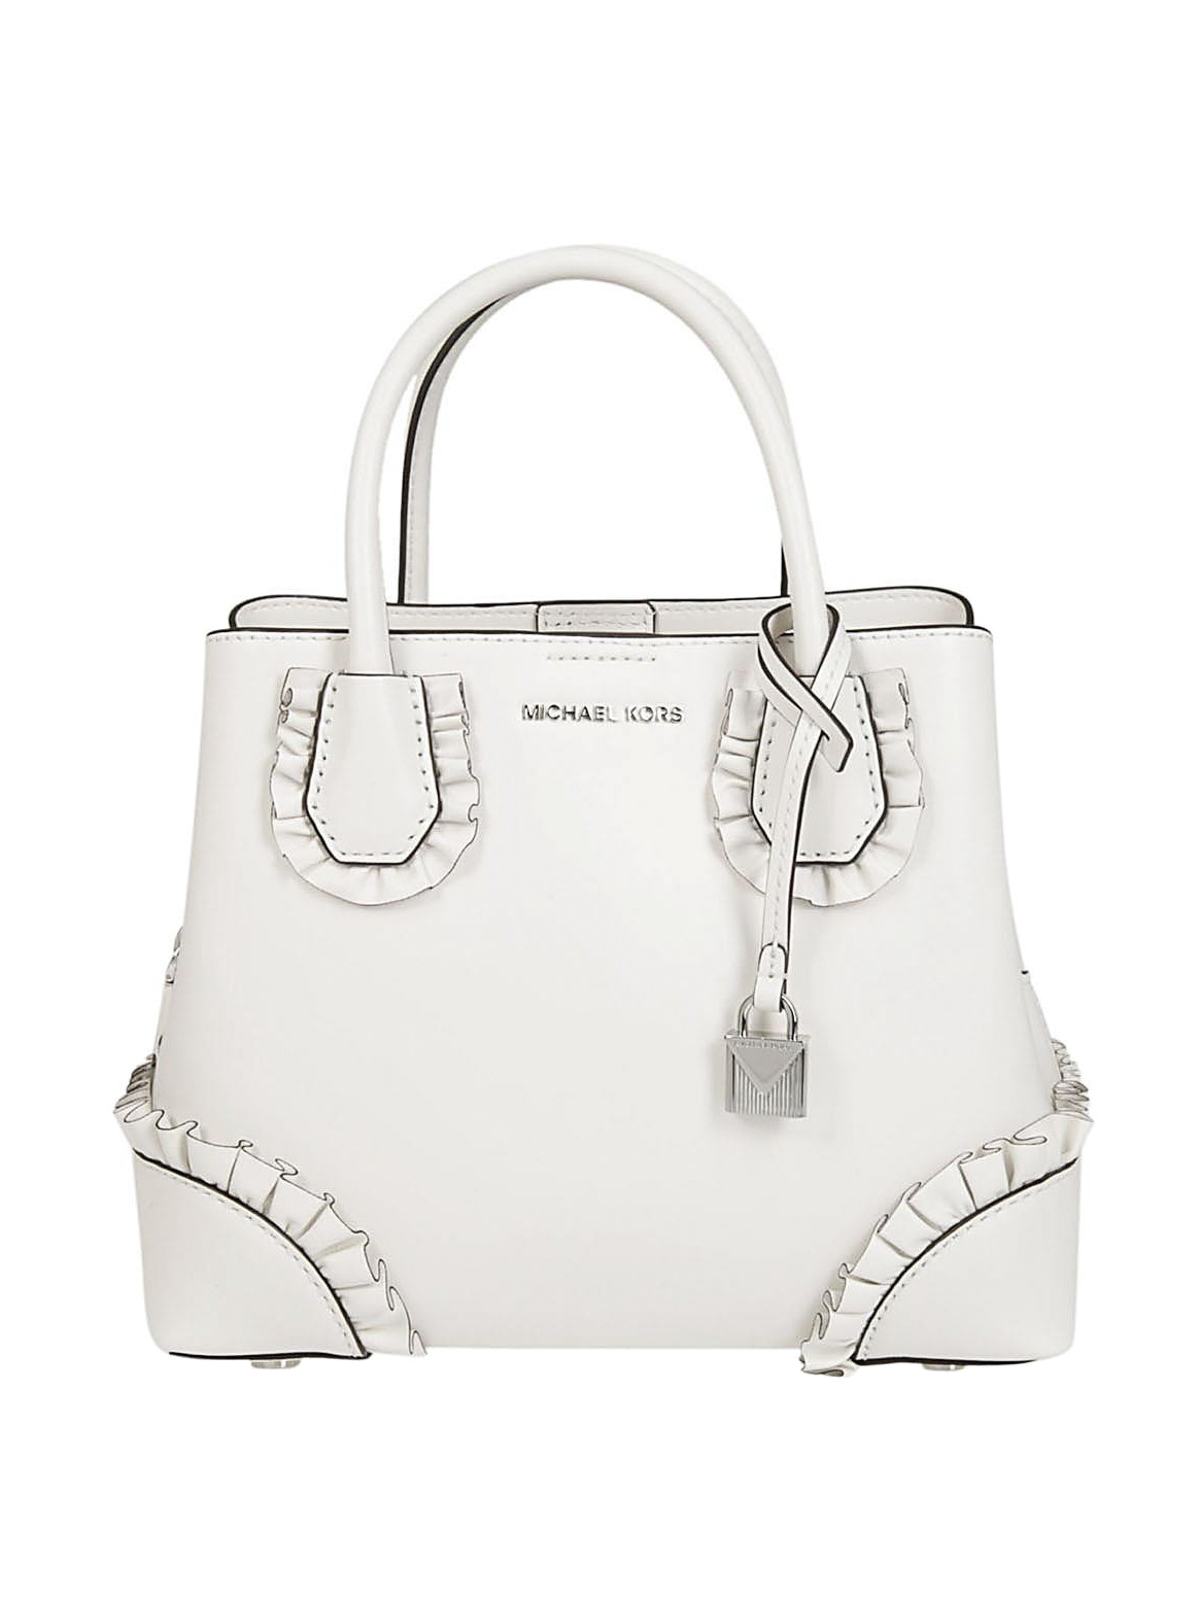 michael kors mercer gallery small white bag totes bags 30s8gz5t5y 085. Black Bedroom Furniture Sets. Home Design Ideas